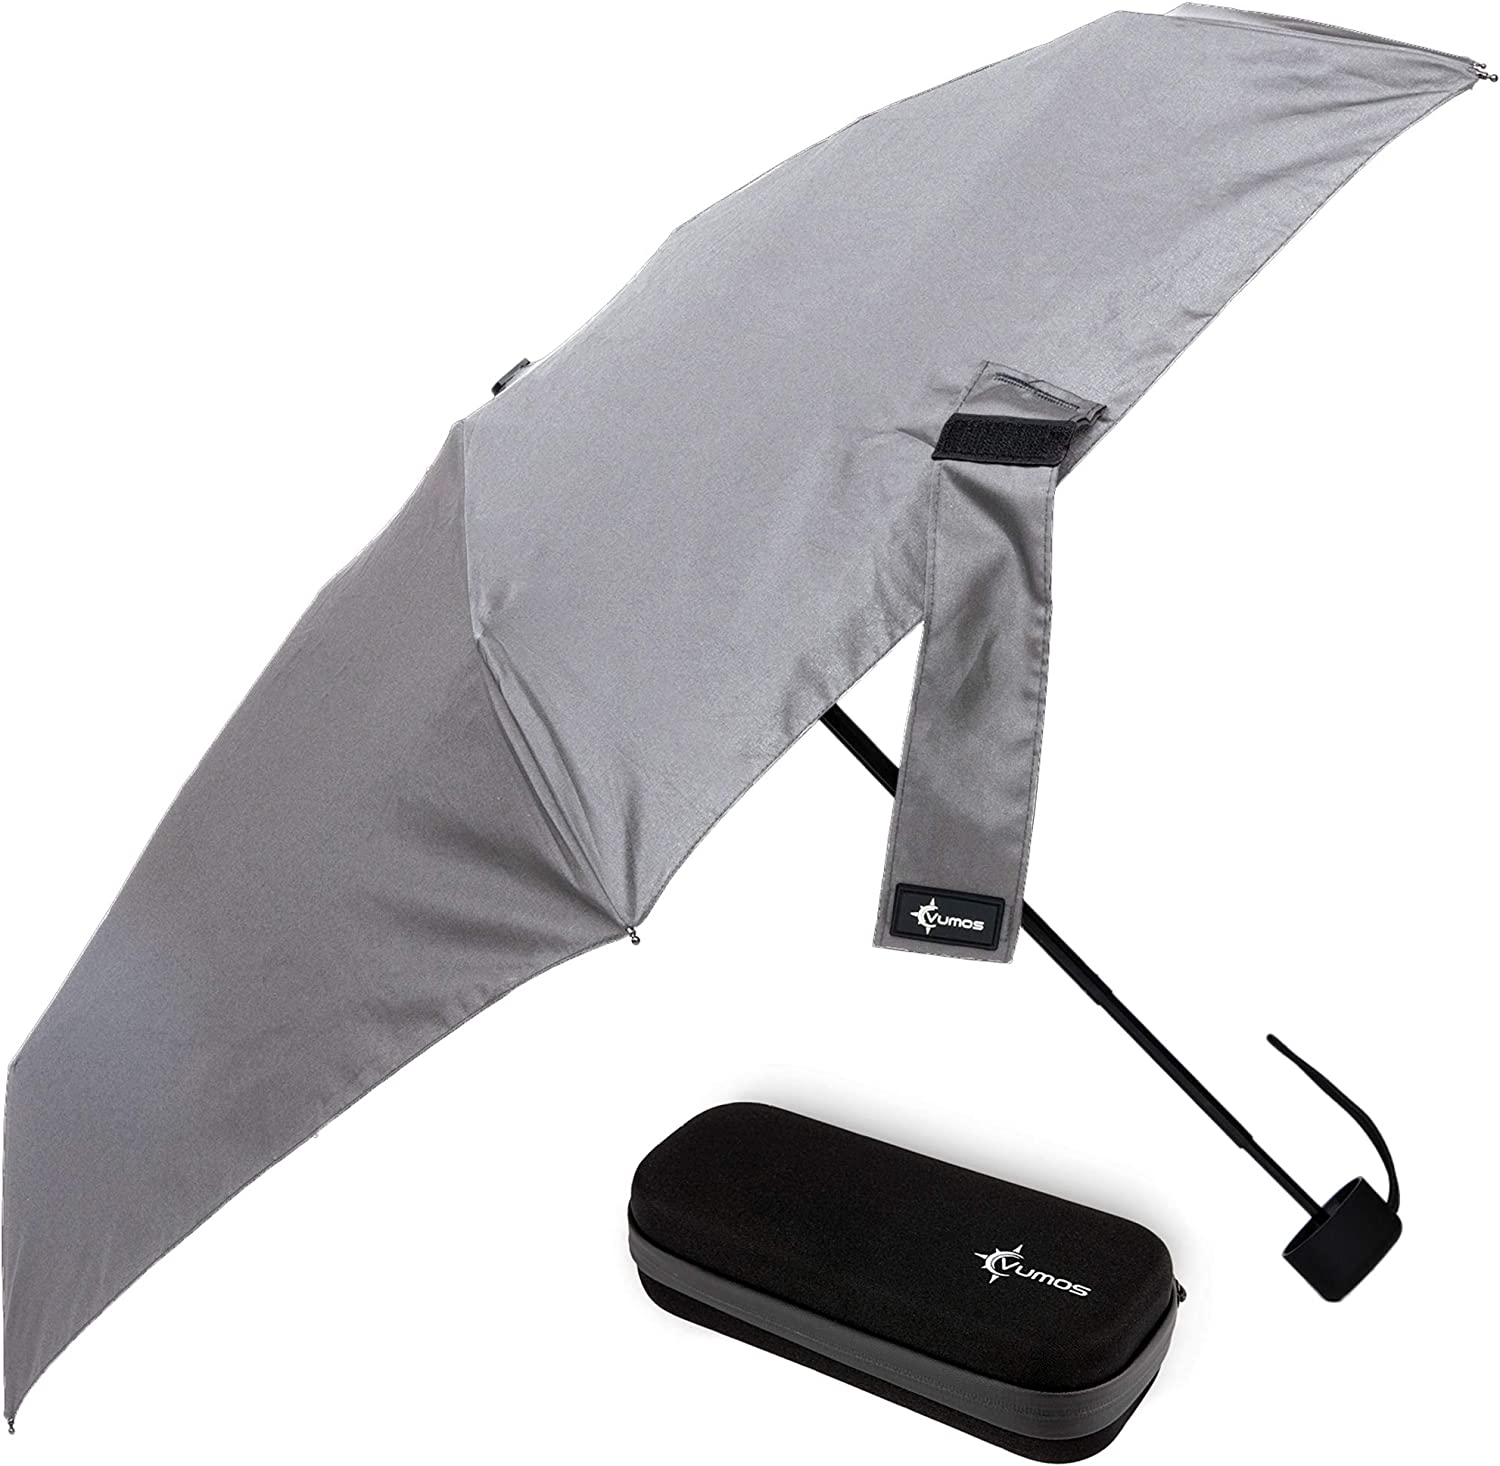 Travel Umbrella with Waterproof Case - Small and Compact for Backpack or Purse. Great Umbrella for Women, Men or Kids. (Classic Gray)